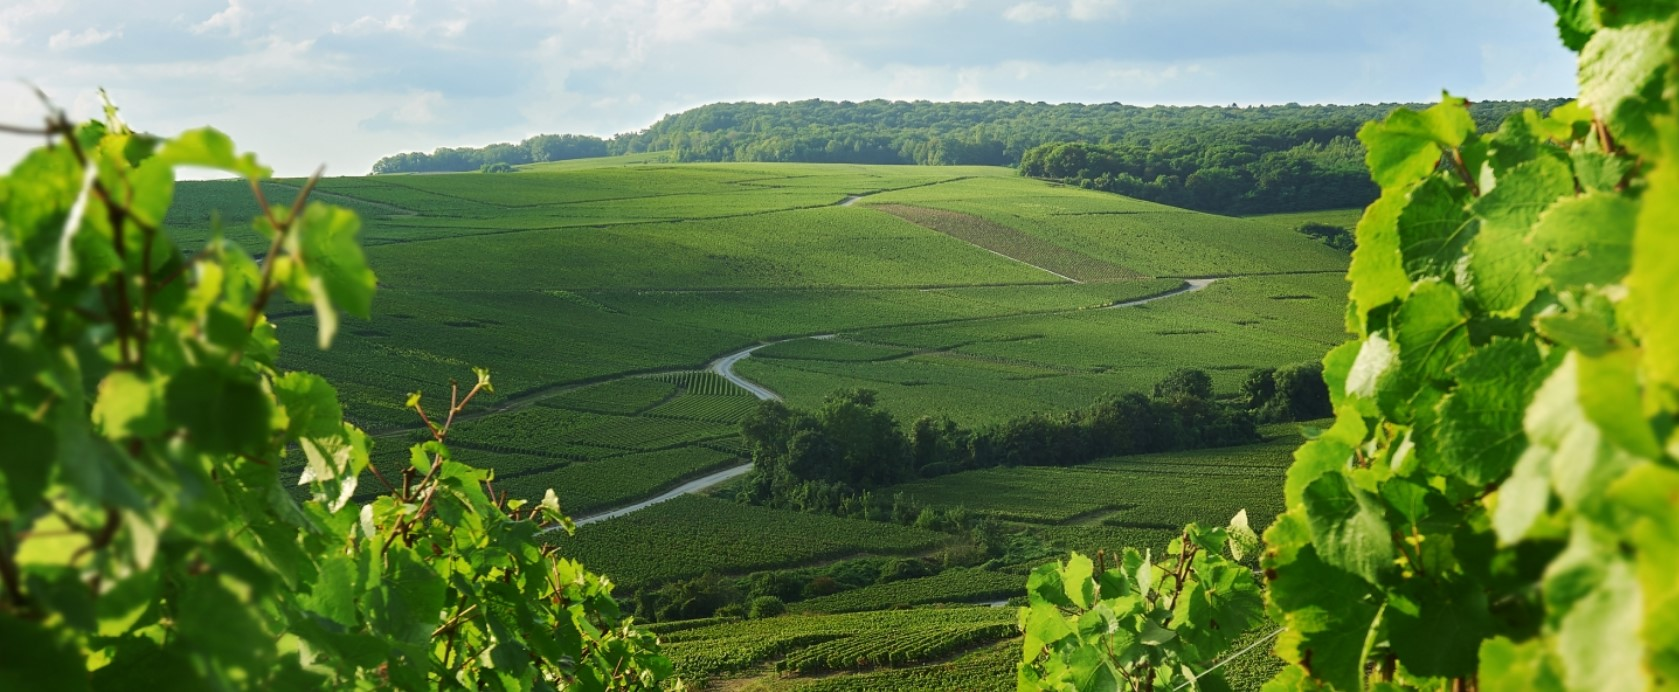 The vineyards of the Maison Charles Heidsieck